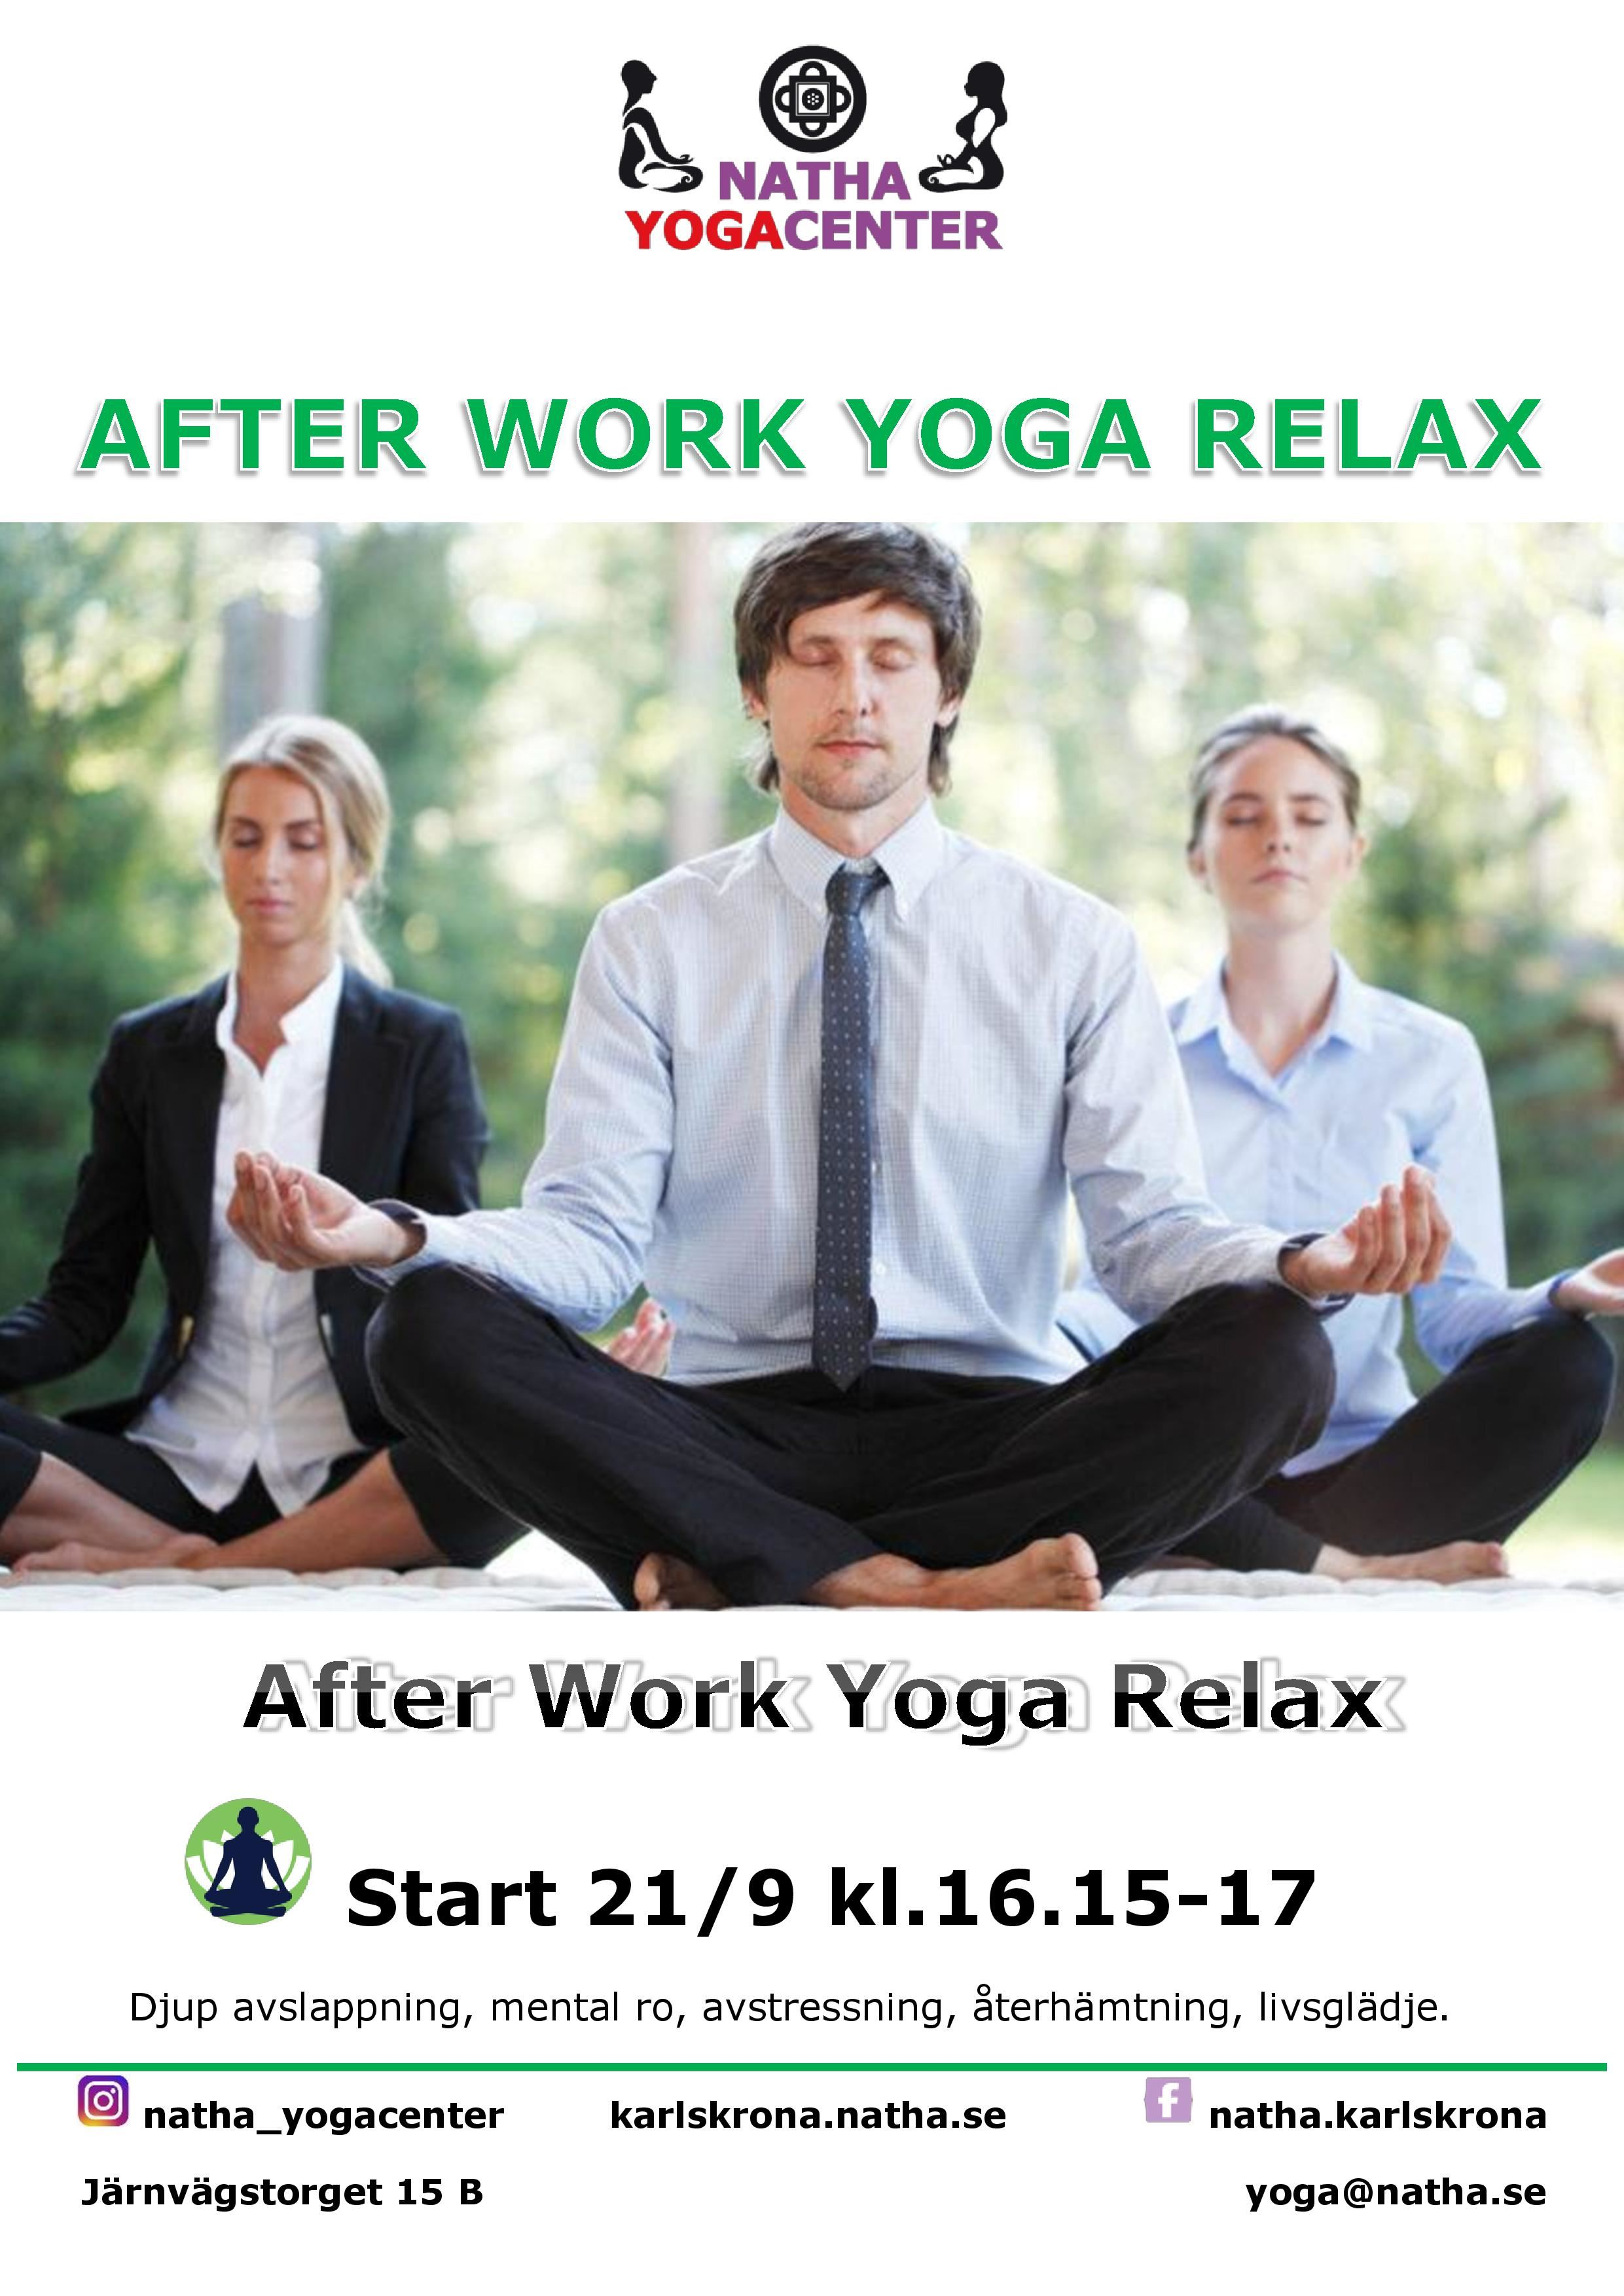 After Work Yoga Relax